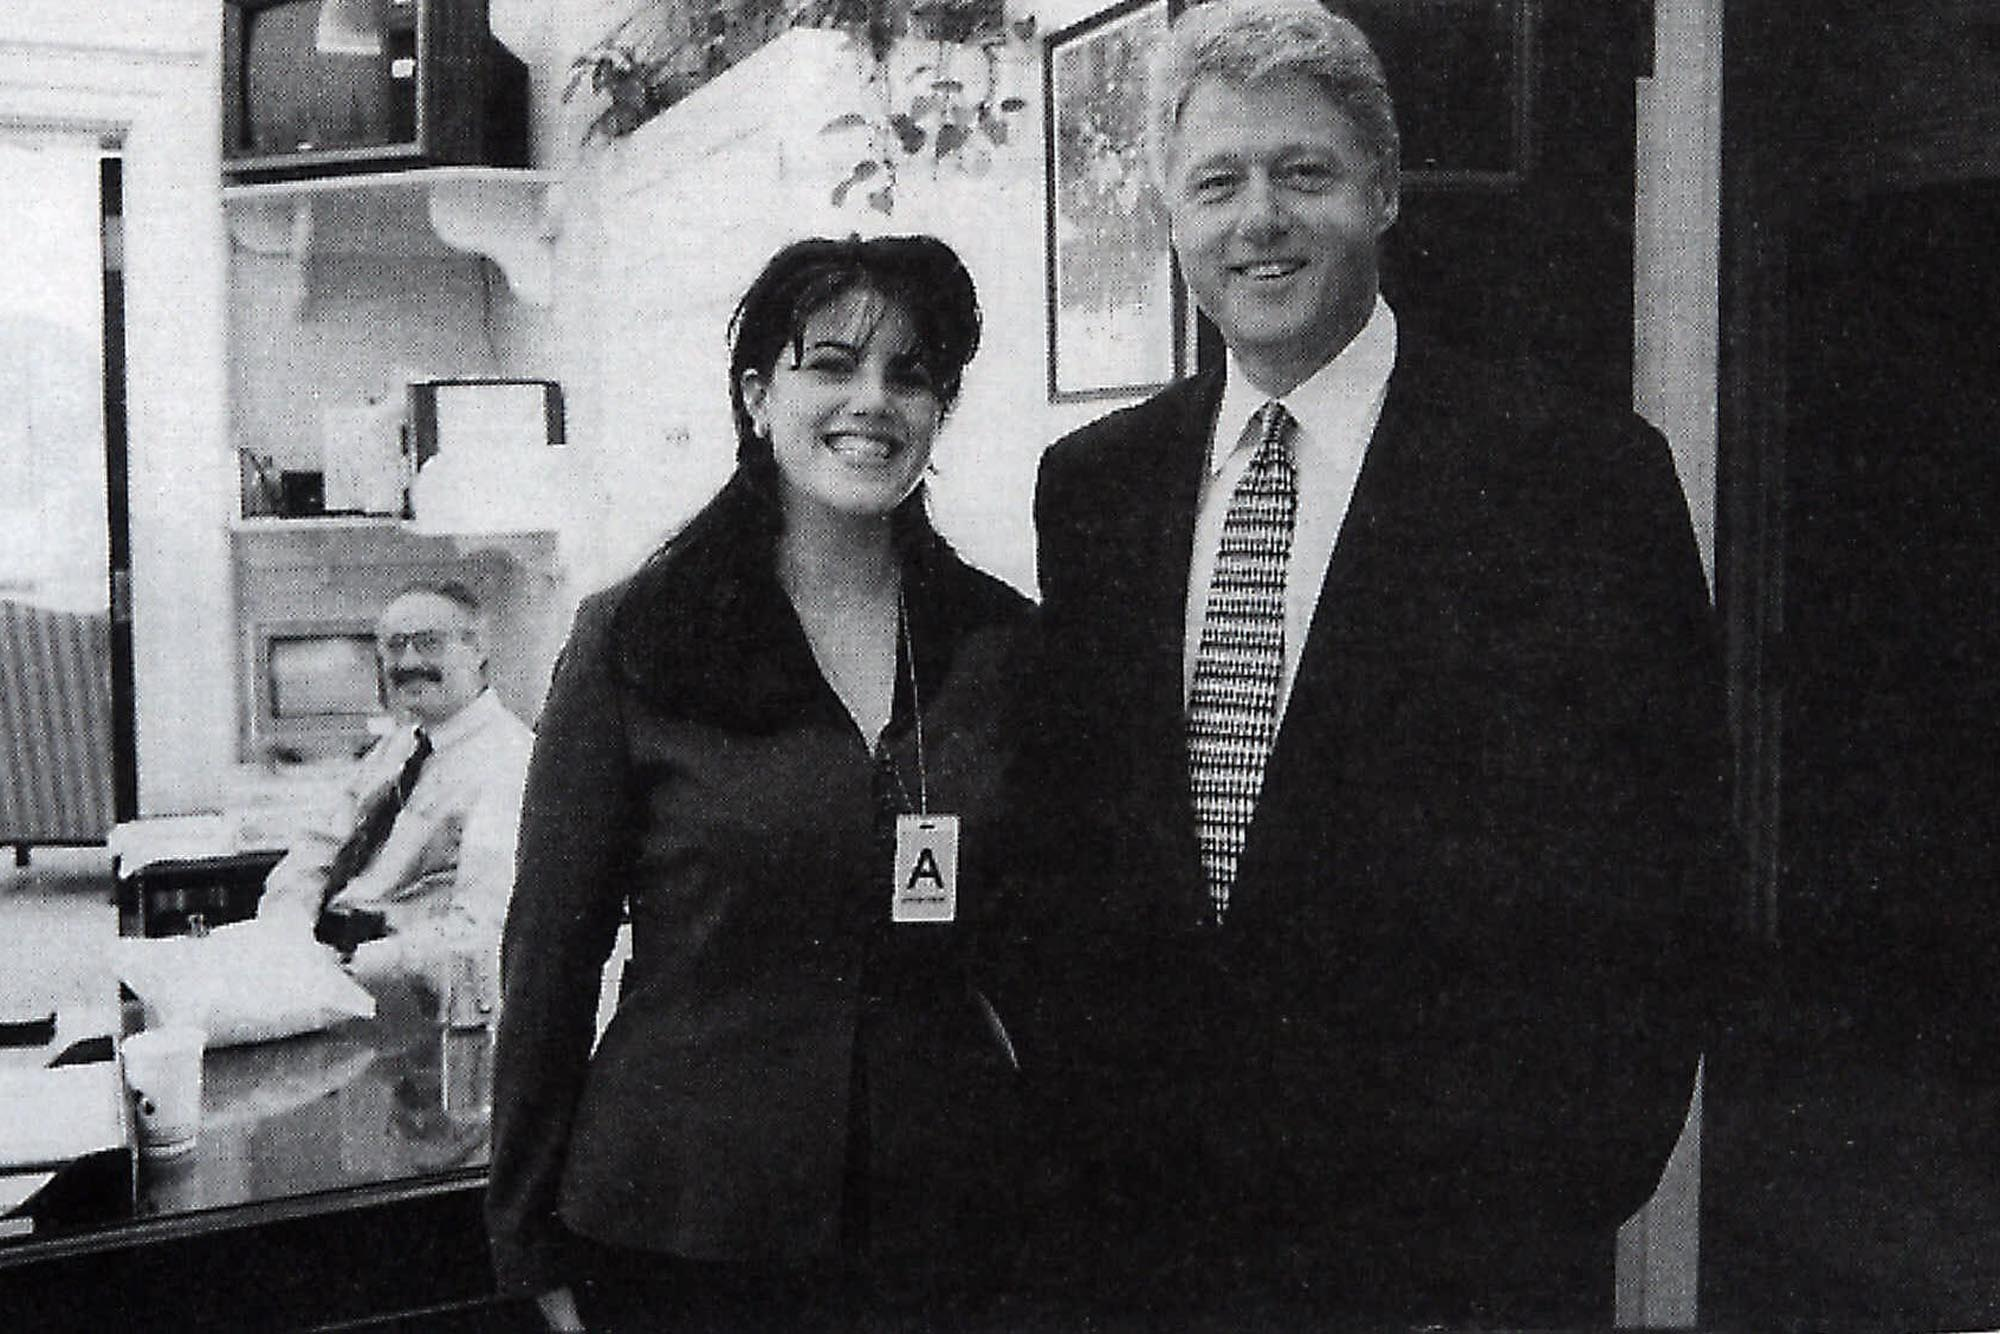 FOR SUNDAY Official White House photo taken Nov. 17, 1995 from page 3179 of Independent Counsel Kenneth Starr's report on President Clinton, showing President Clinton and Monica Lewinsky at the White House. Congress laid before a wary nation Monday the raw footage of the president's grand jury testimony and 3,183 pages of evidence chronicling his relationship with Monica Lewinsky in explicit detail. (AP Photo/OIC)